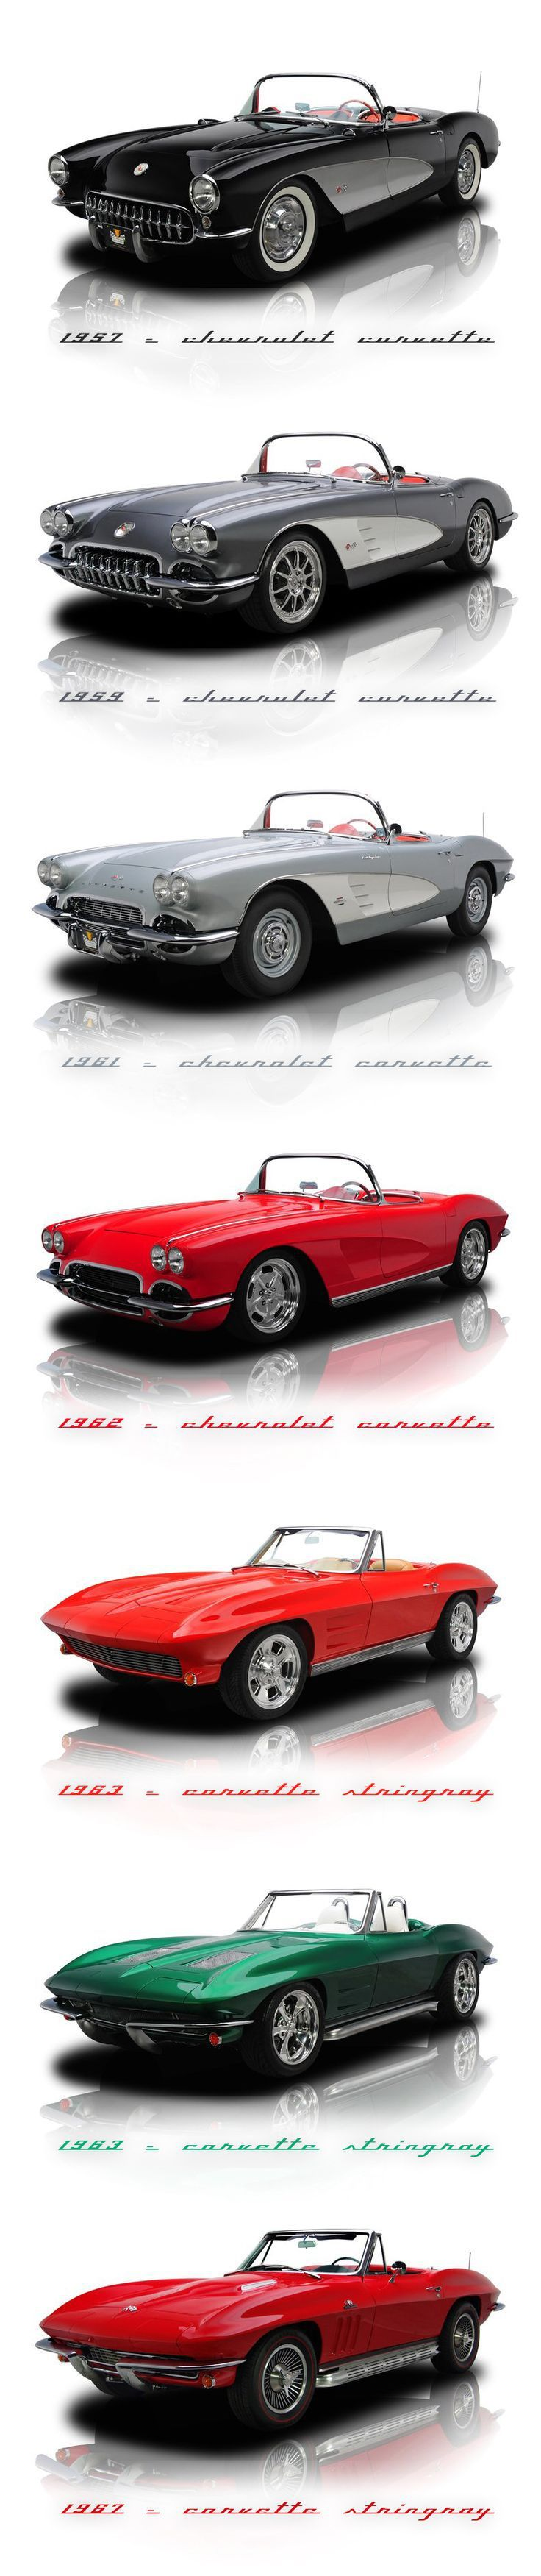 347 best Cabrio images on Pinterest